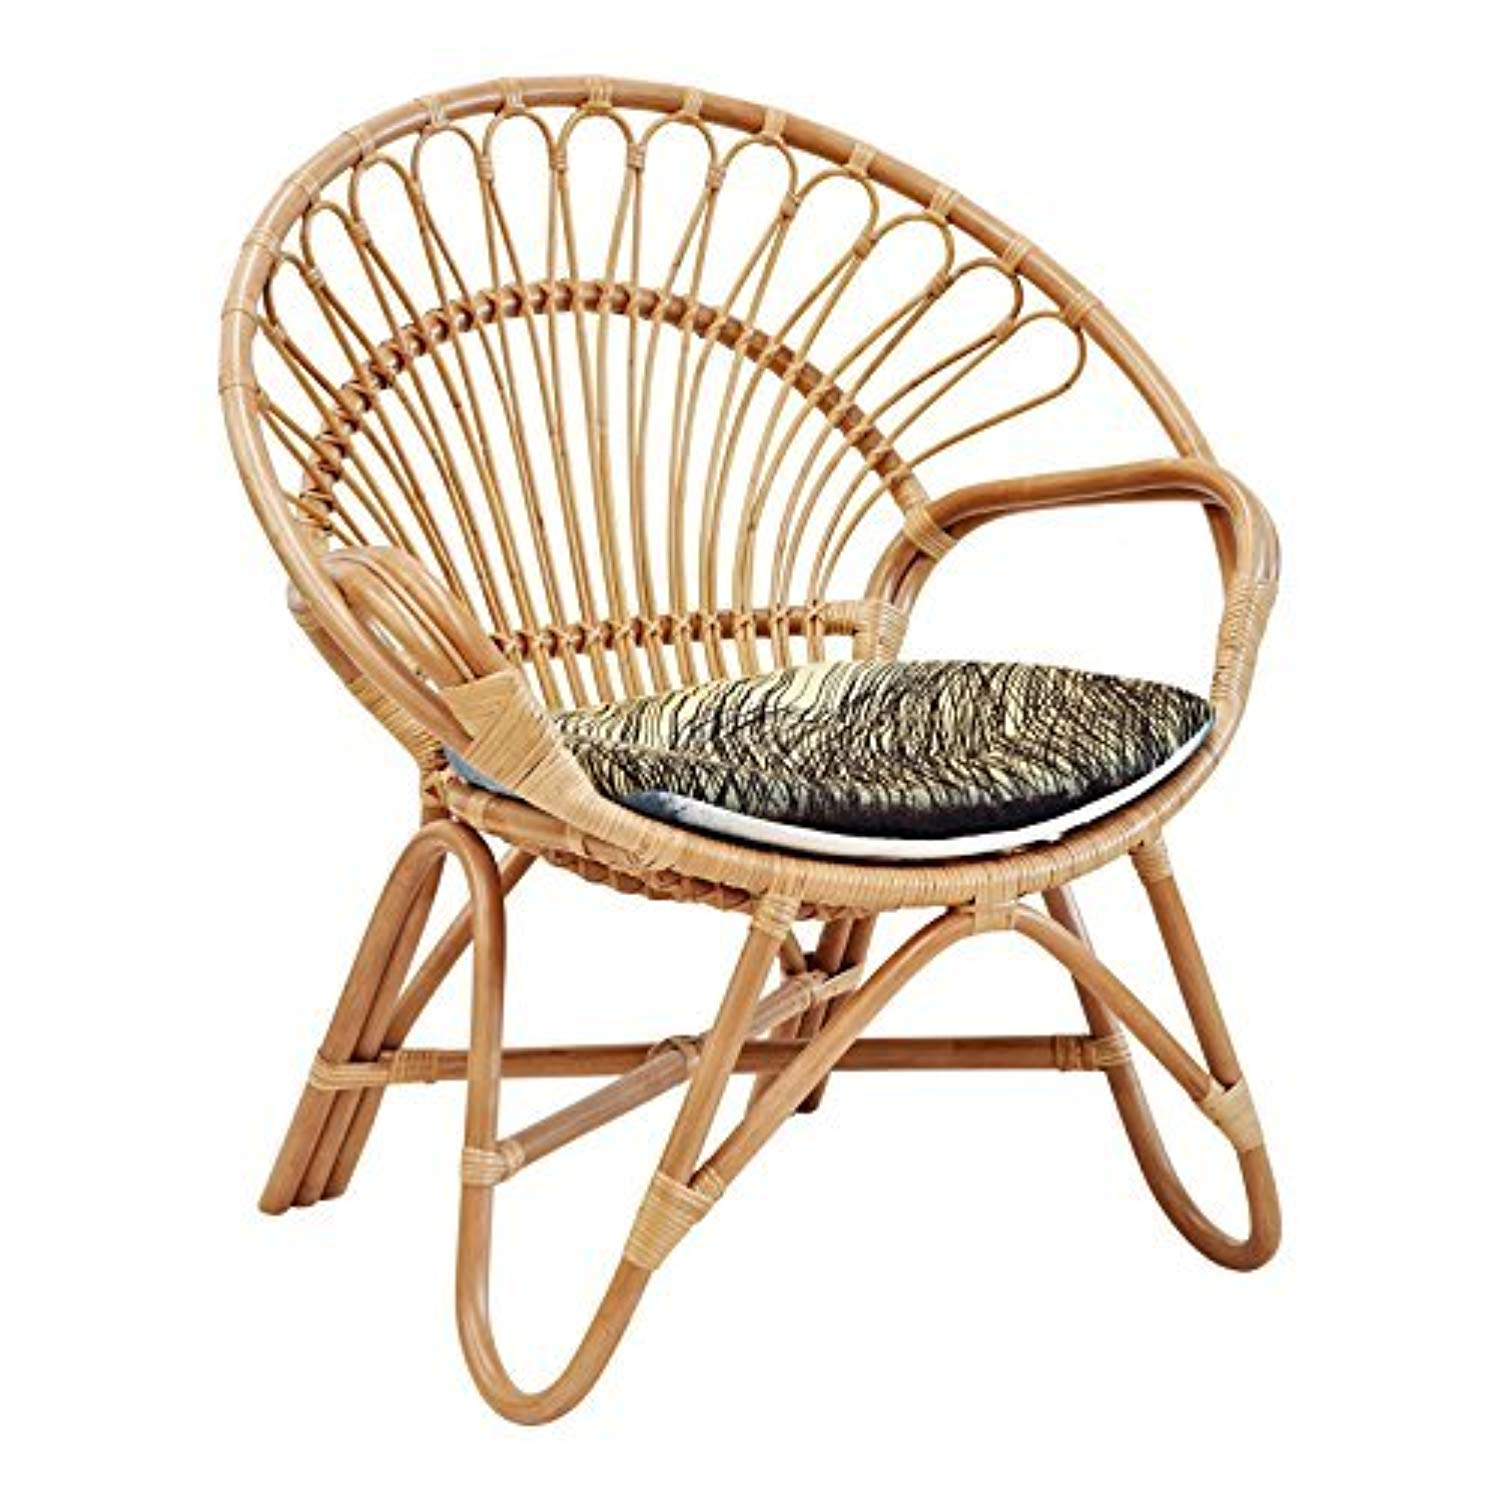 IRA Garden Cane Cushioned Chair With Cushion - IRA Furniture